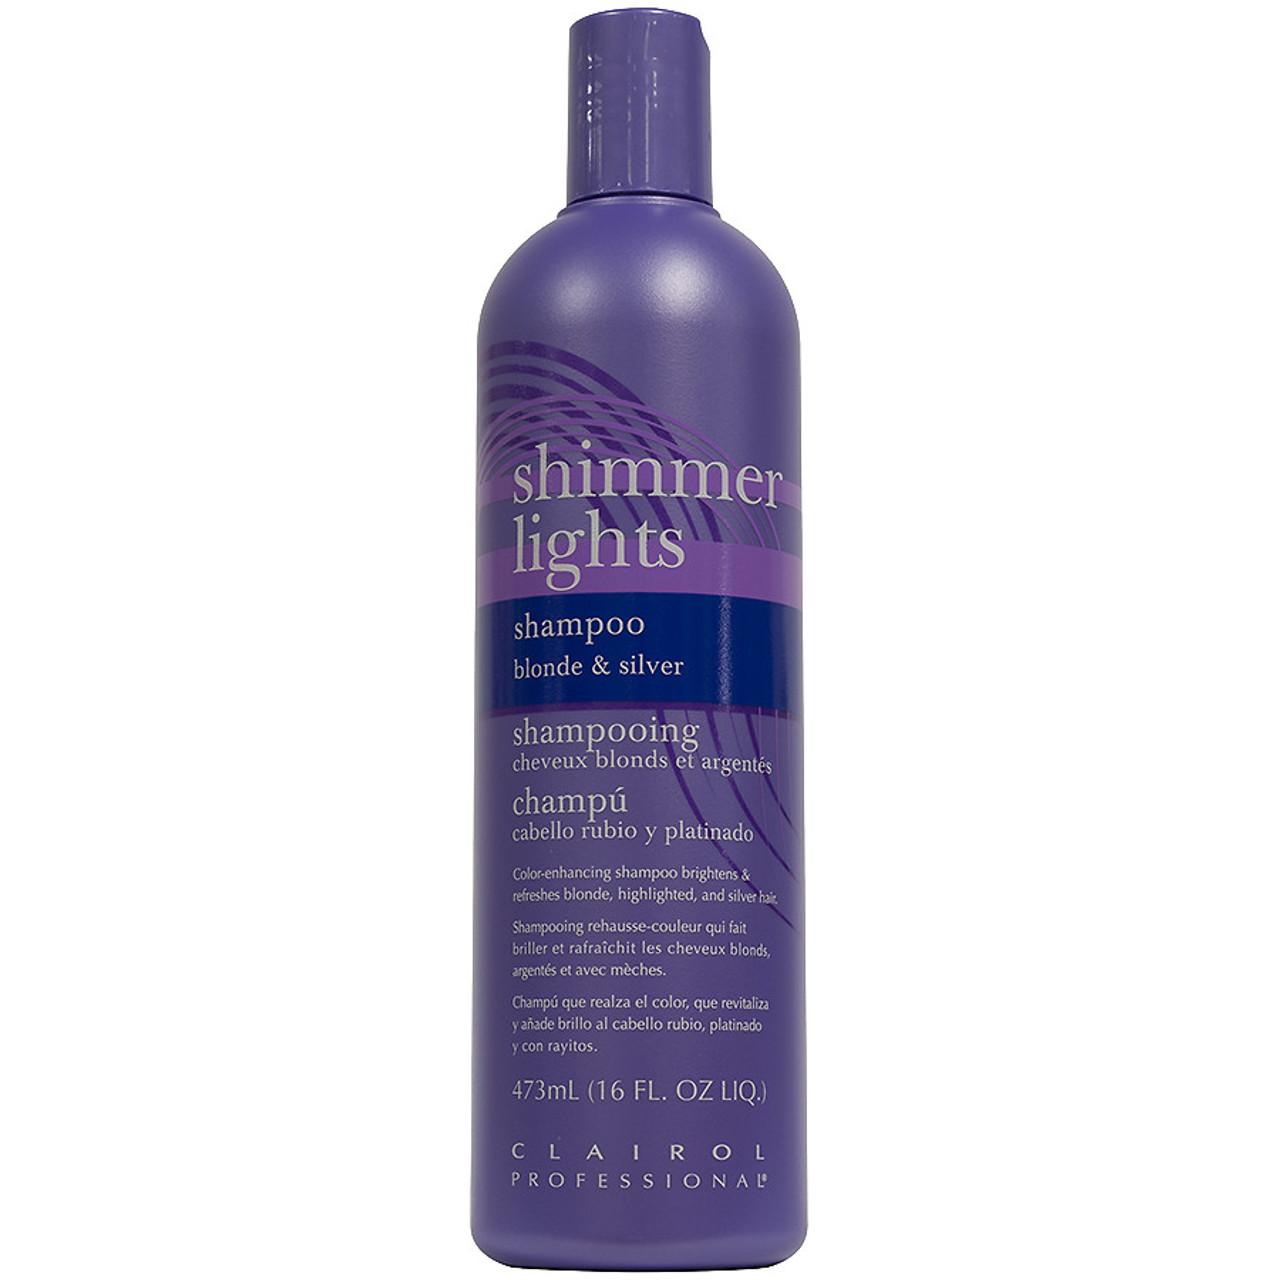 Clairol Shimmer Lights Shampoo 16 oz